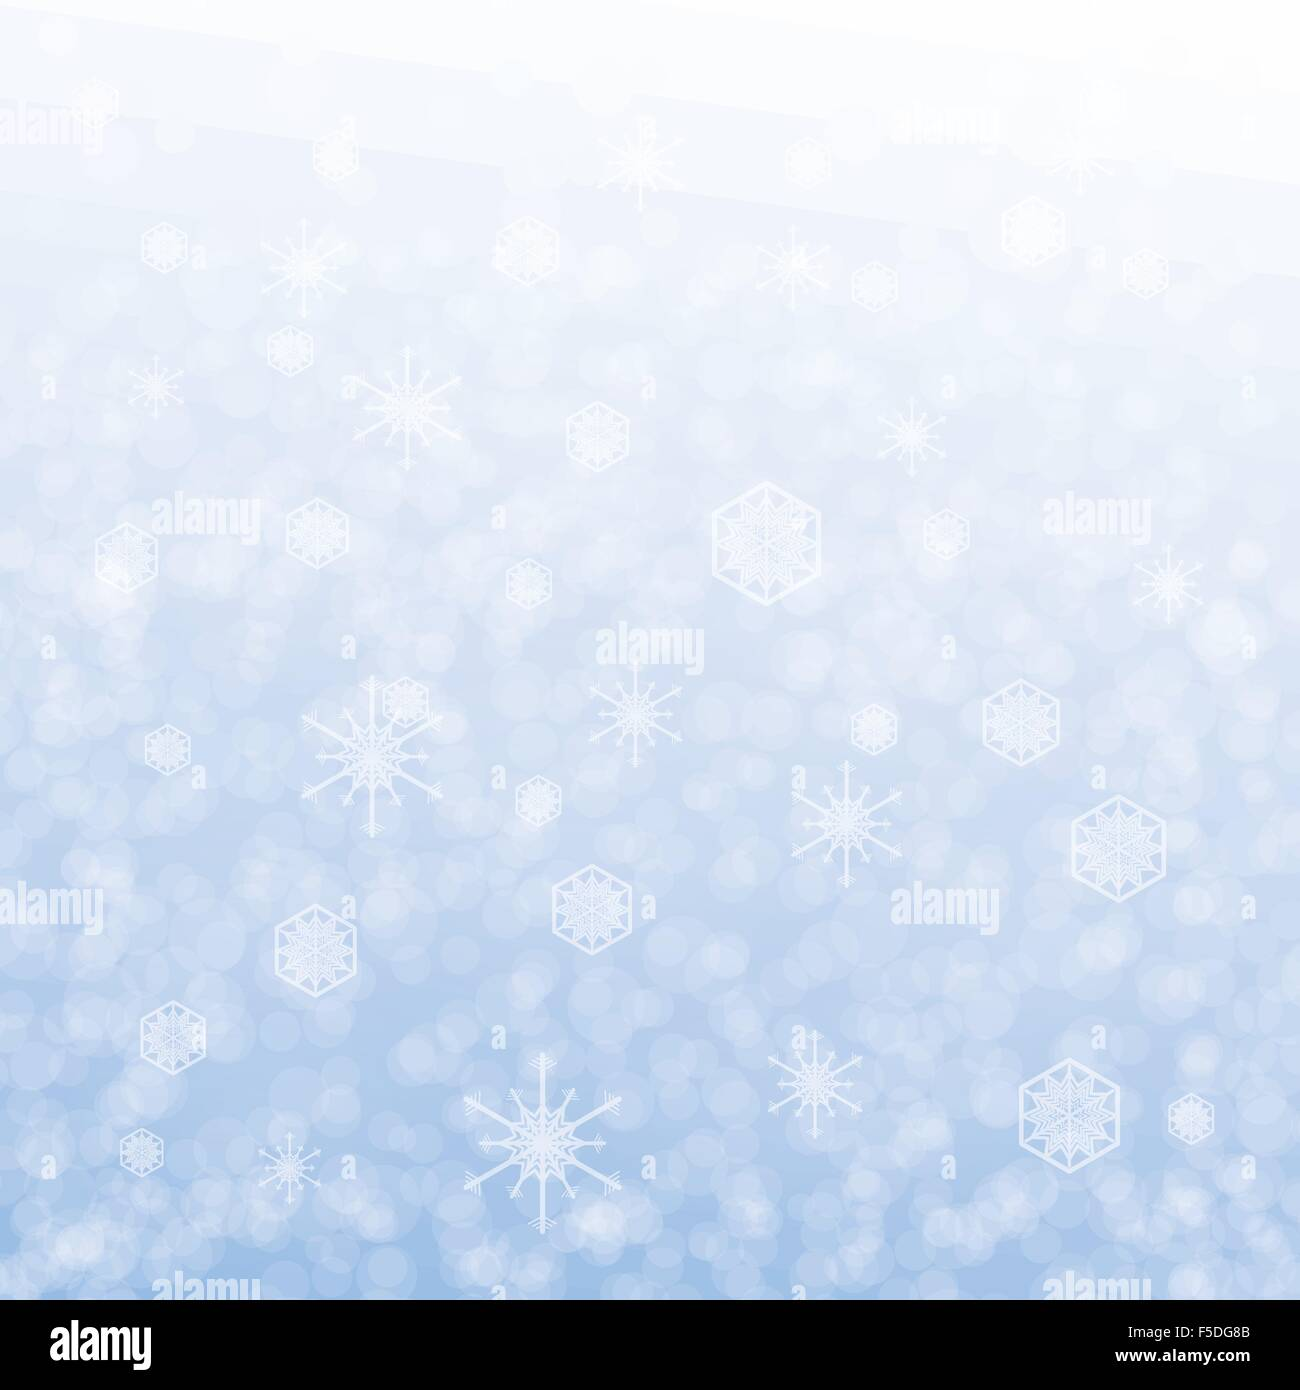 Christmas card design with snowflake on blue background - Stock Image